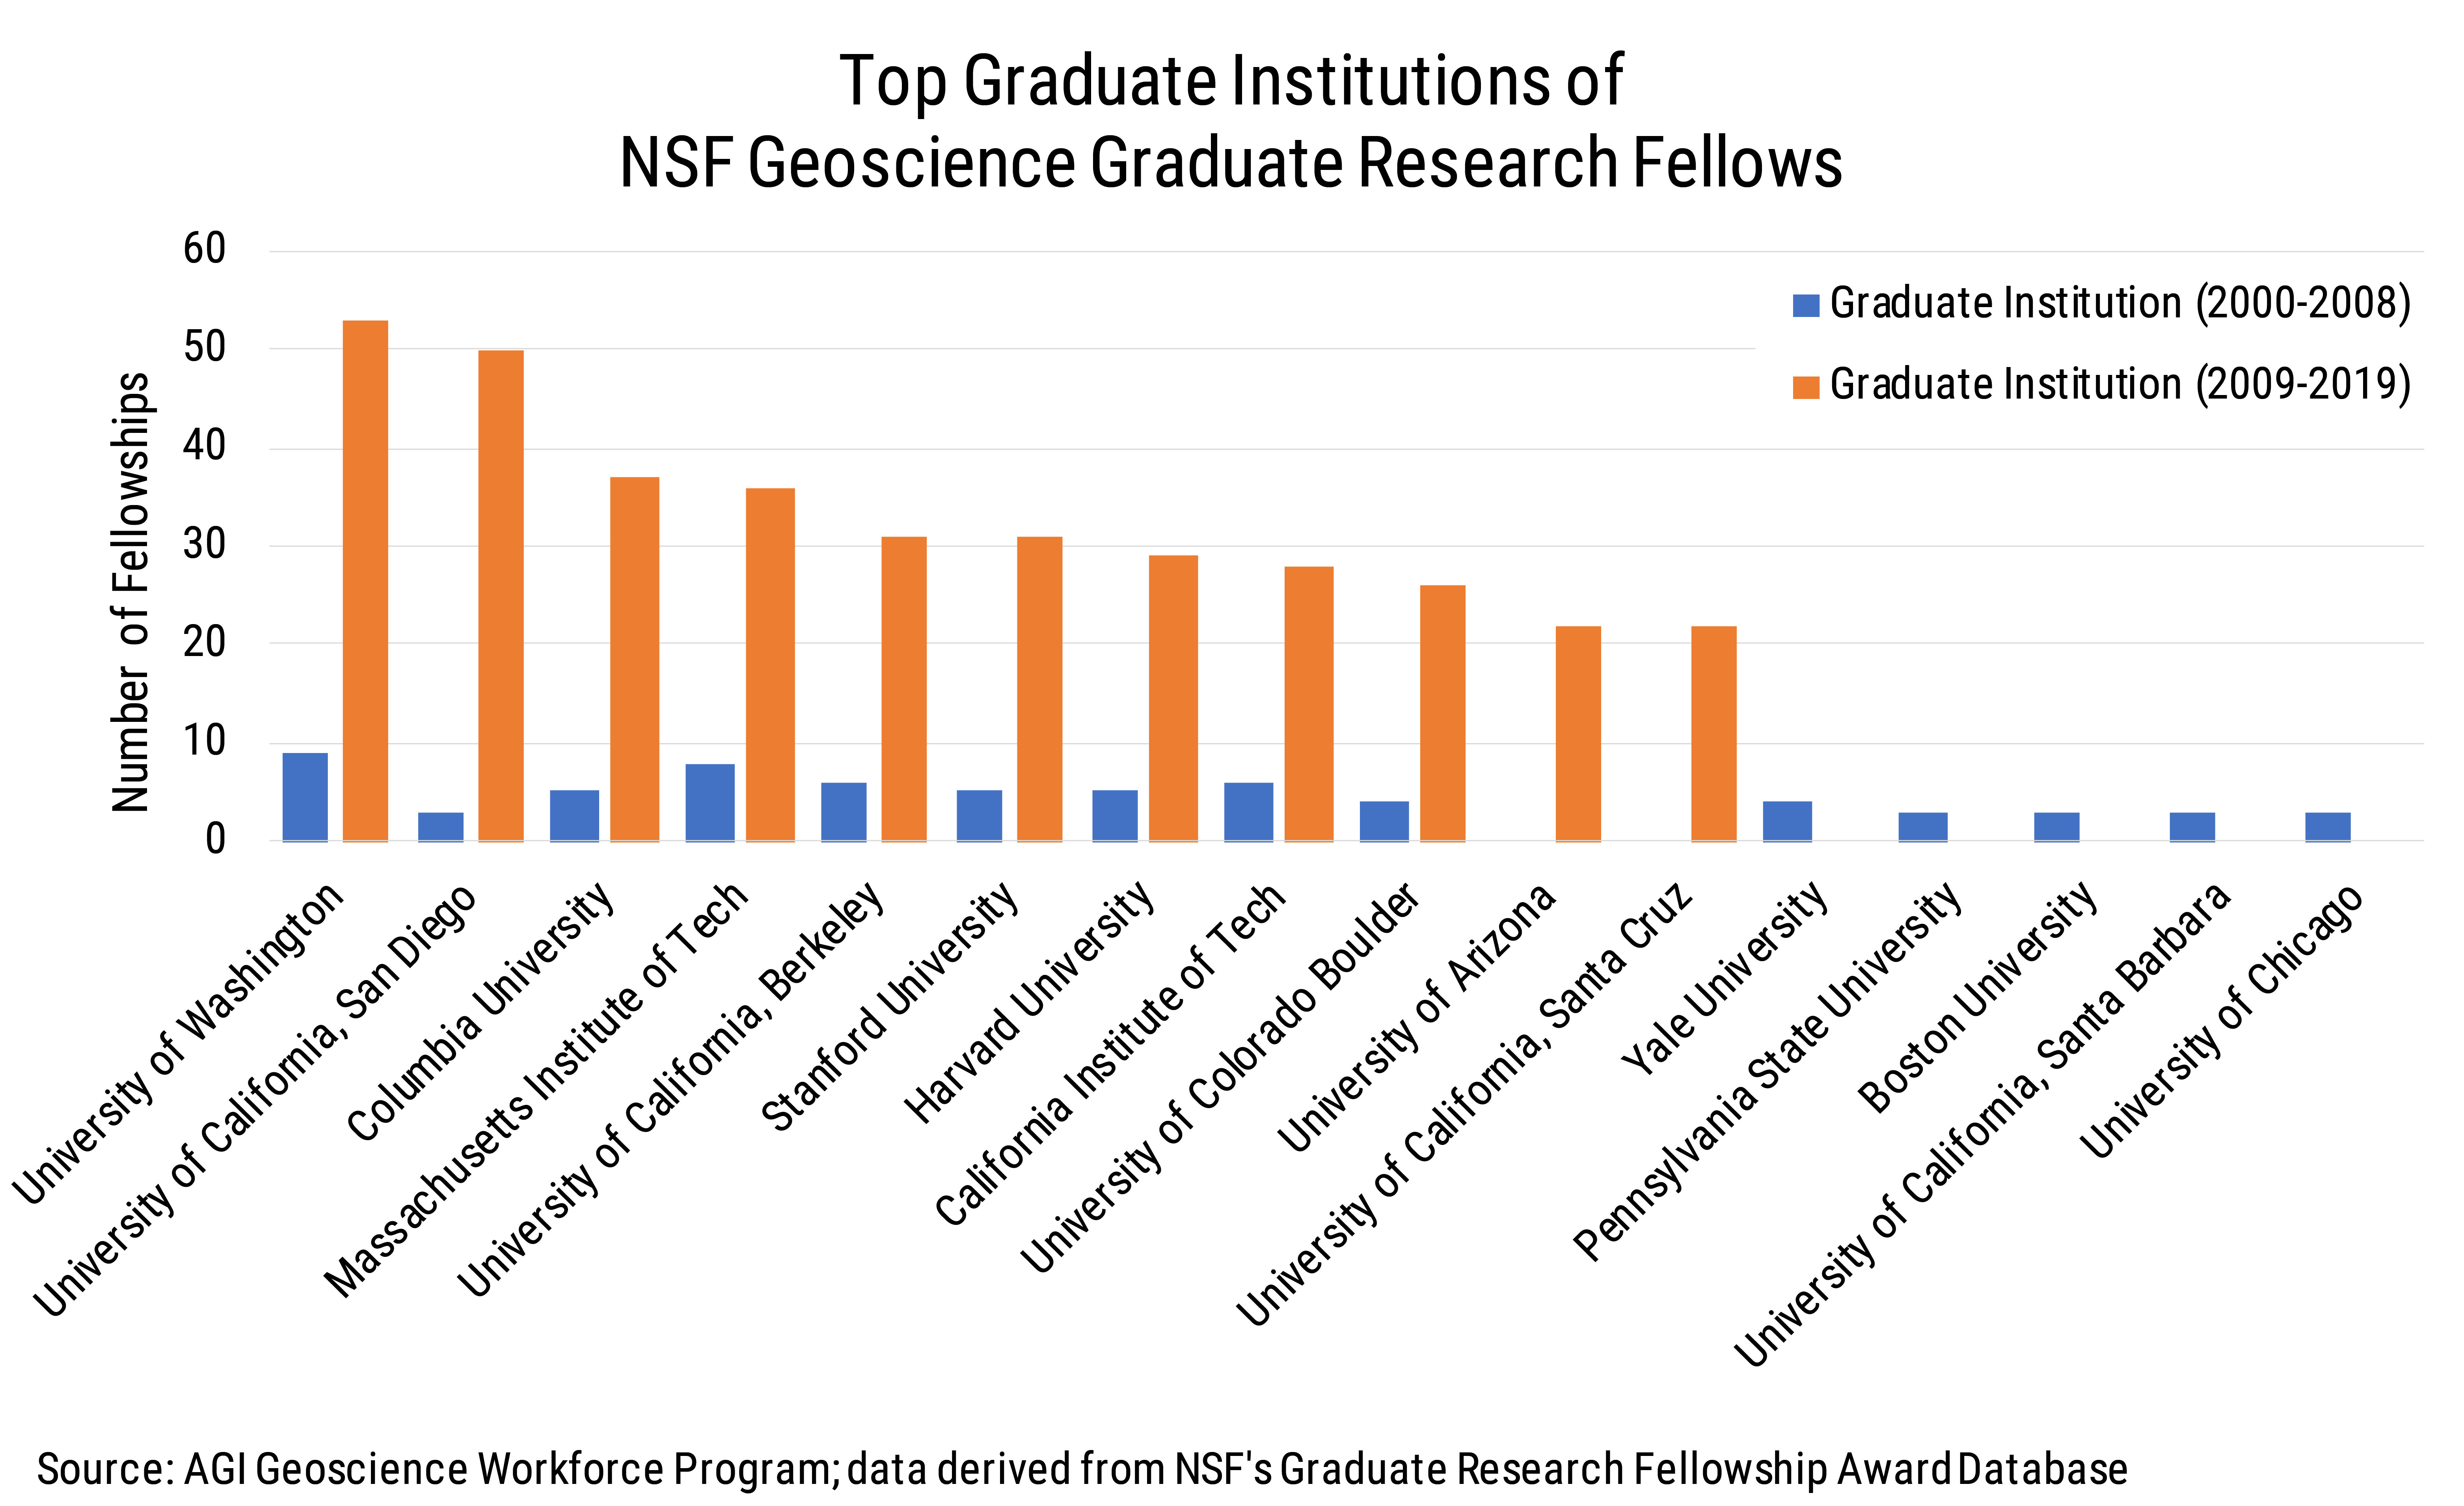 Data Brief 2009-009 chart05: Top Graduate Institutions of NSF Geoscience Graduate Research Fellows